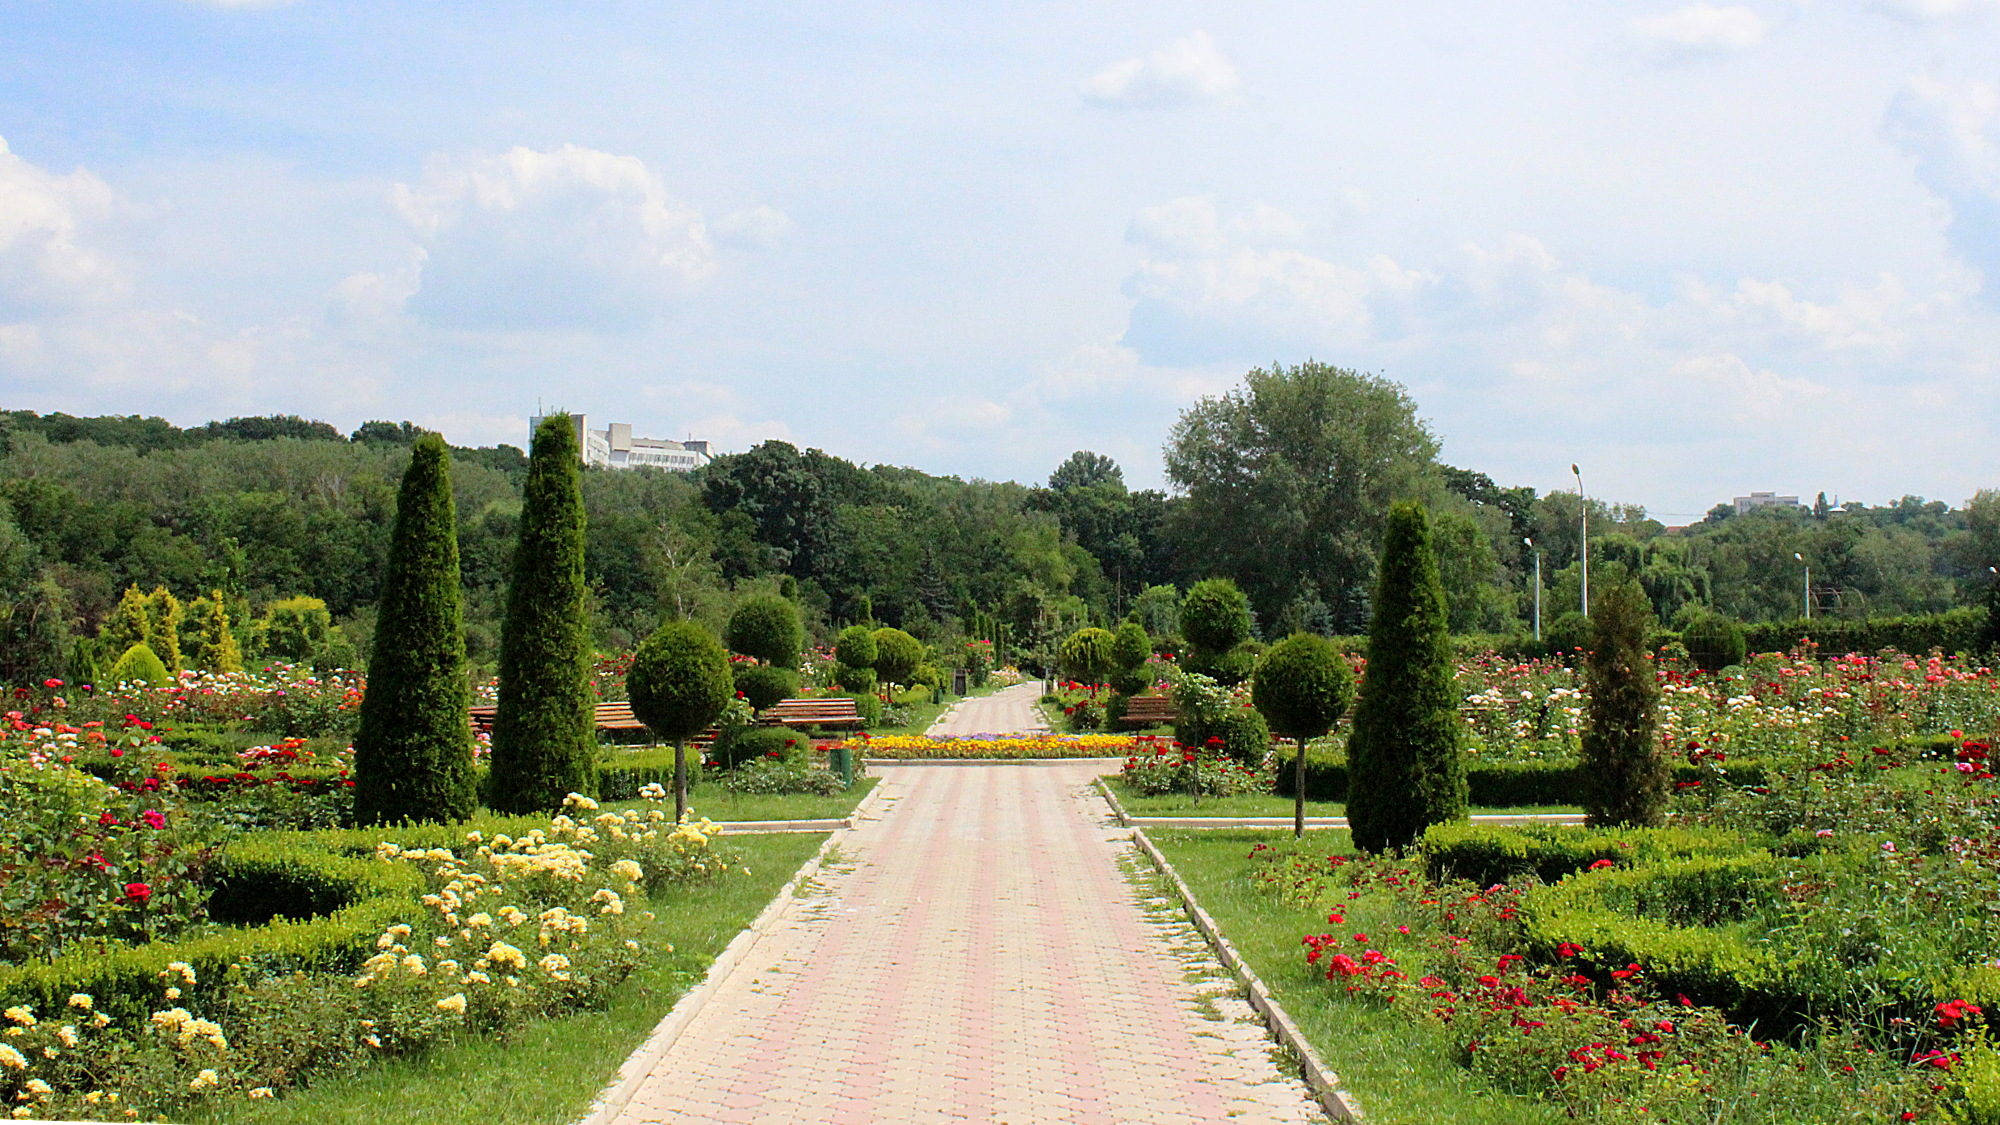 A wide, tiled walking path in the National Botanical Garden of Moldova with flowers on both sides.